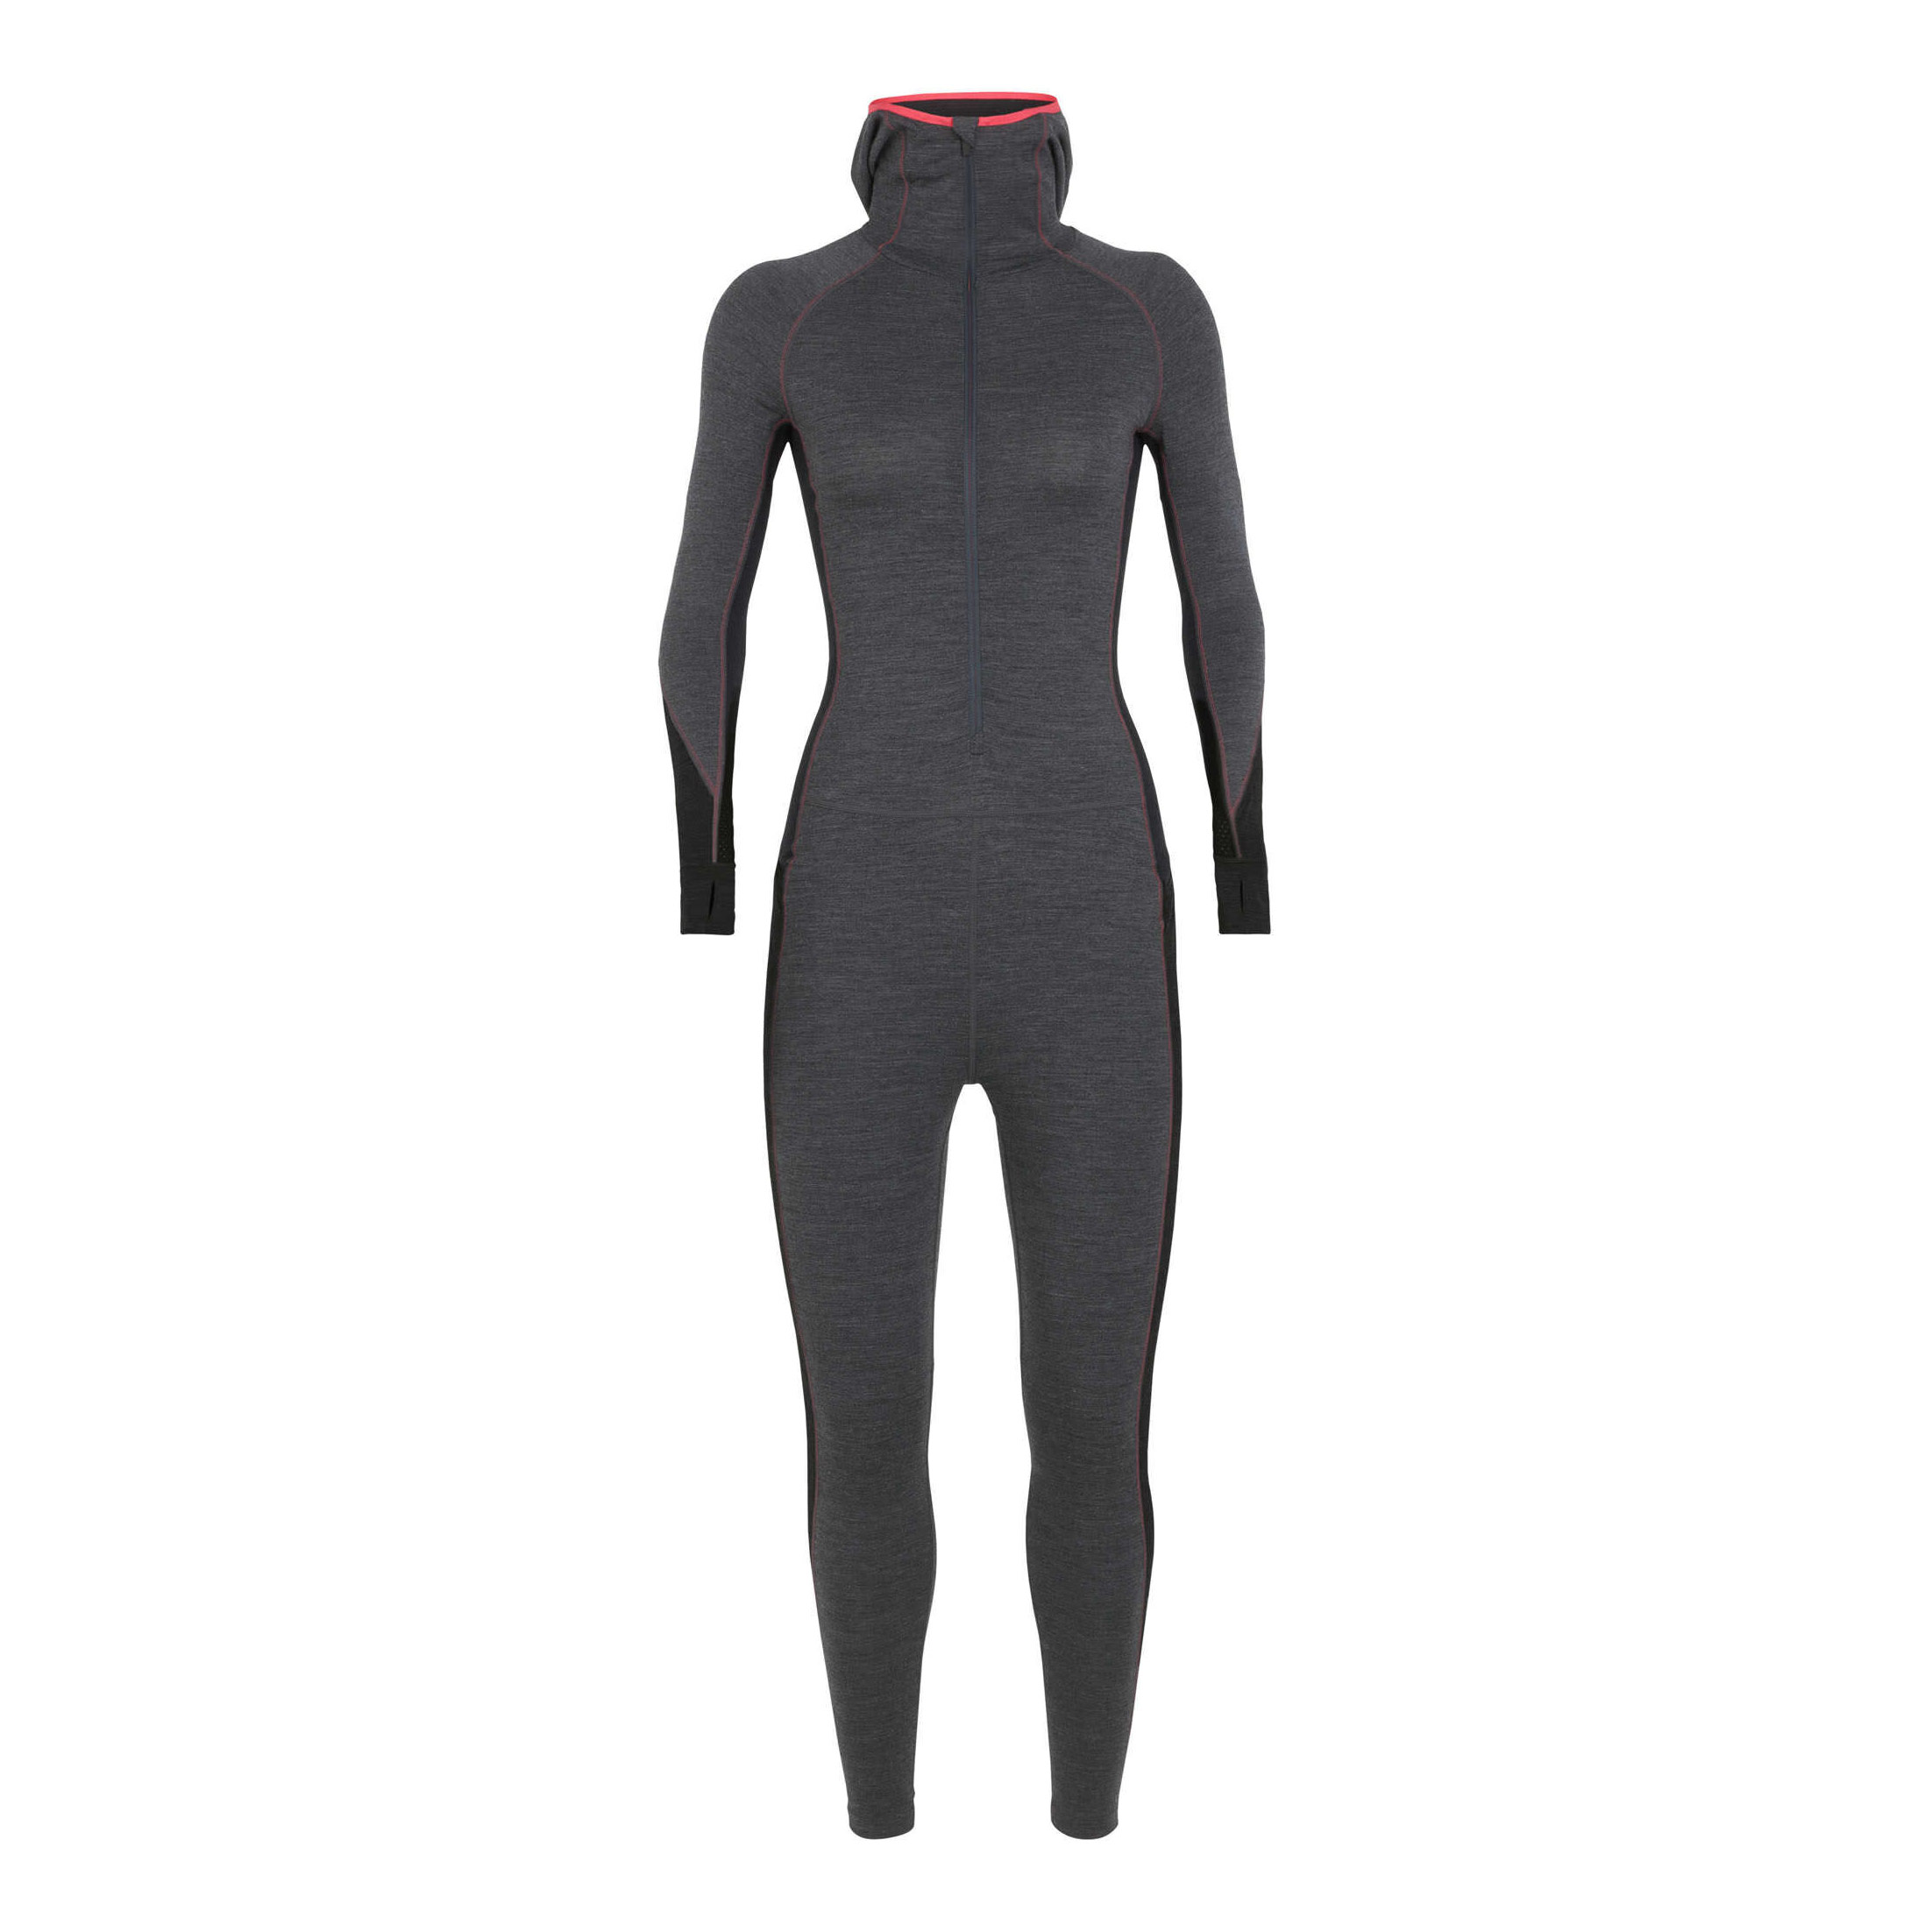 200 Zone One Sheep Suit - Women's